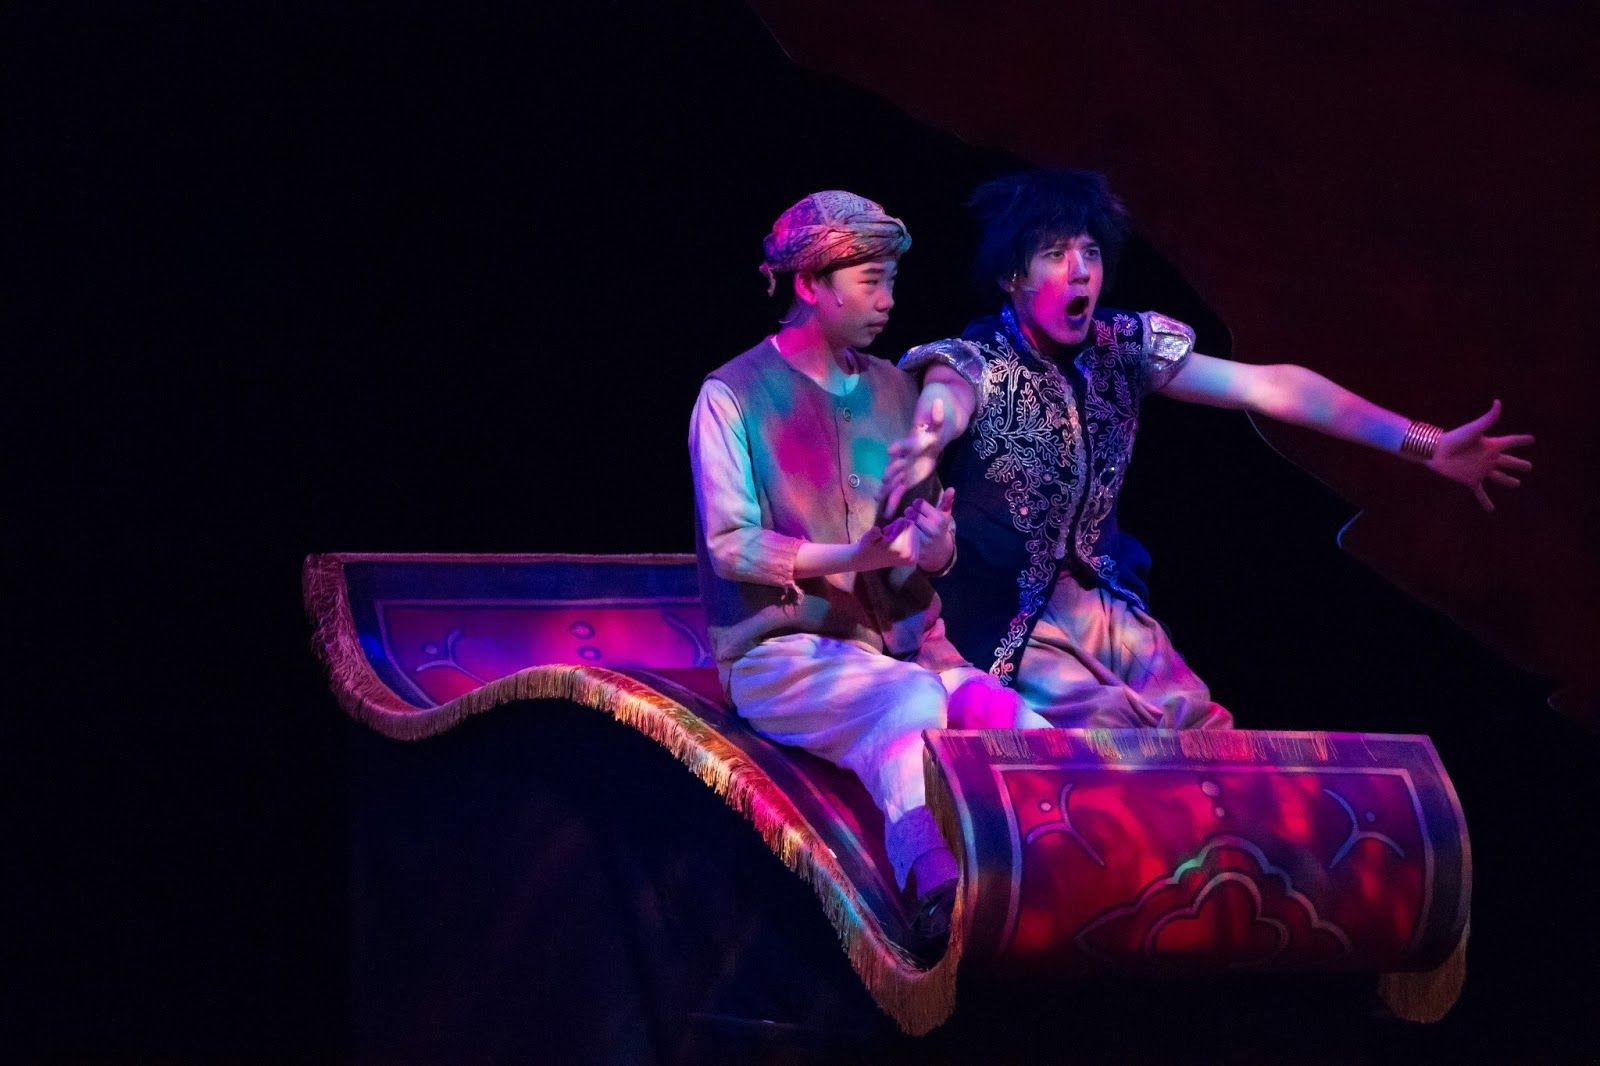 Aladdin Jr Magic Carpet Google Search Aladdin Musical Aladdin Costume Aladdin Magic Carpet